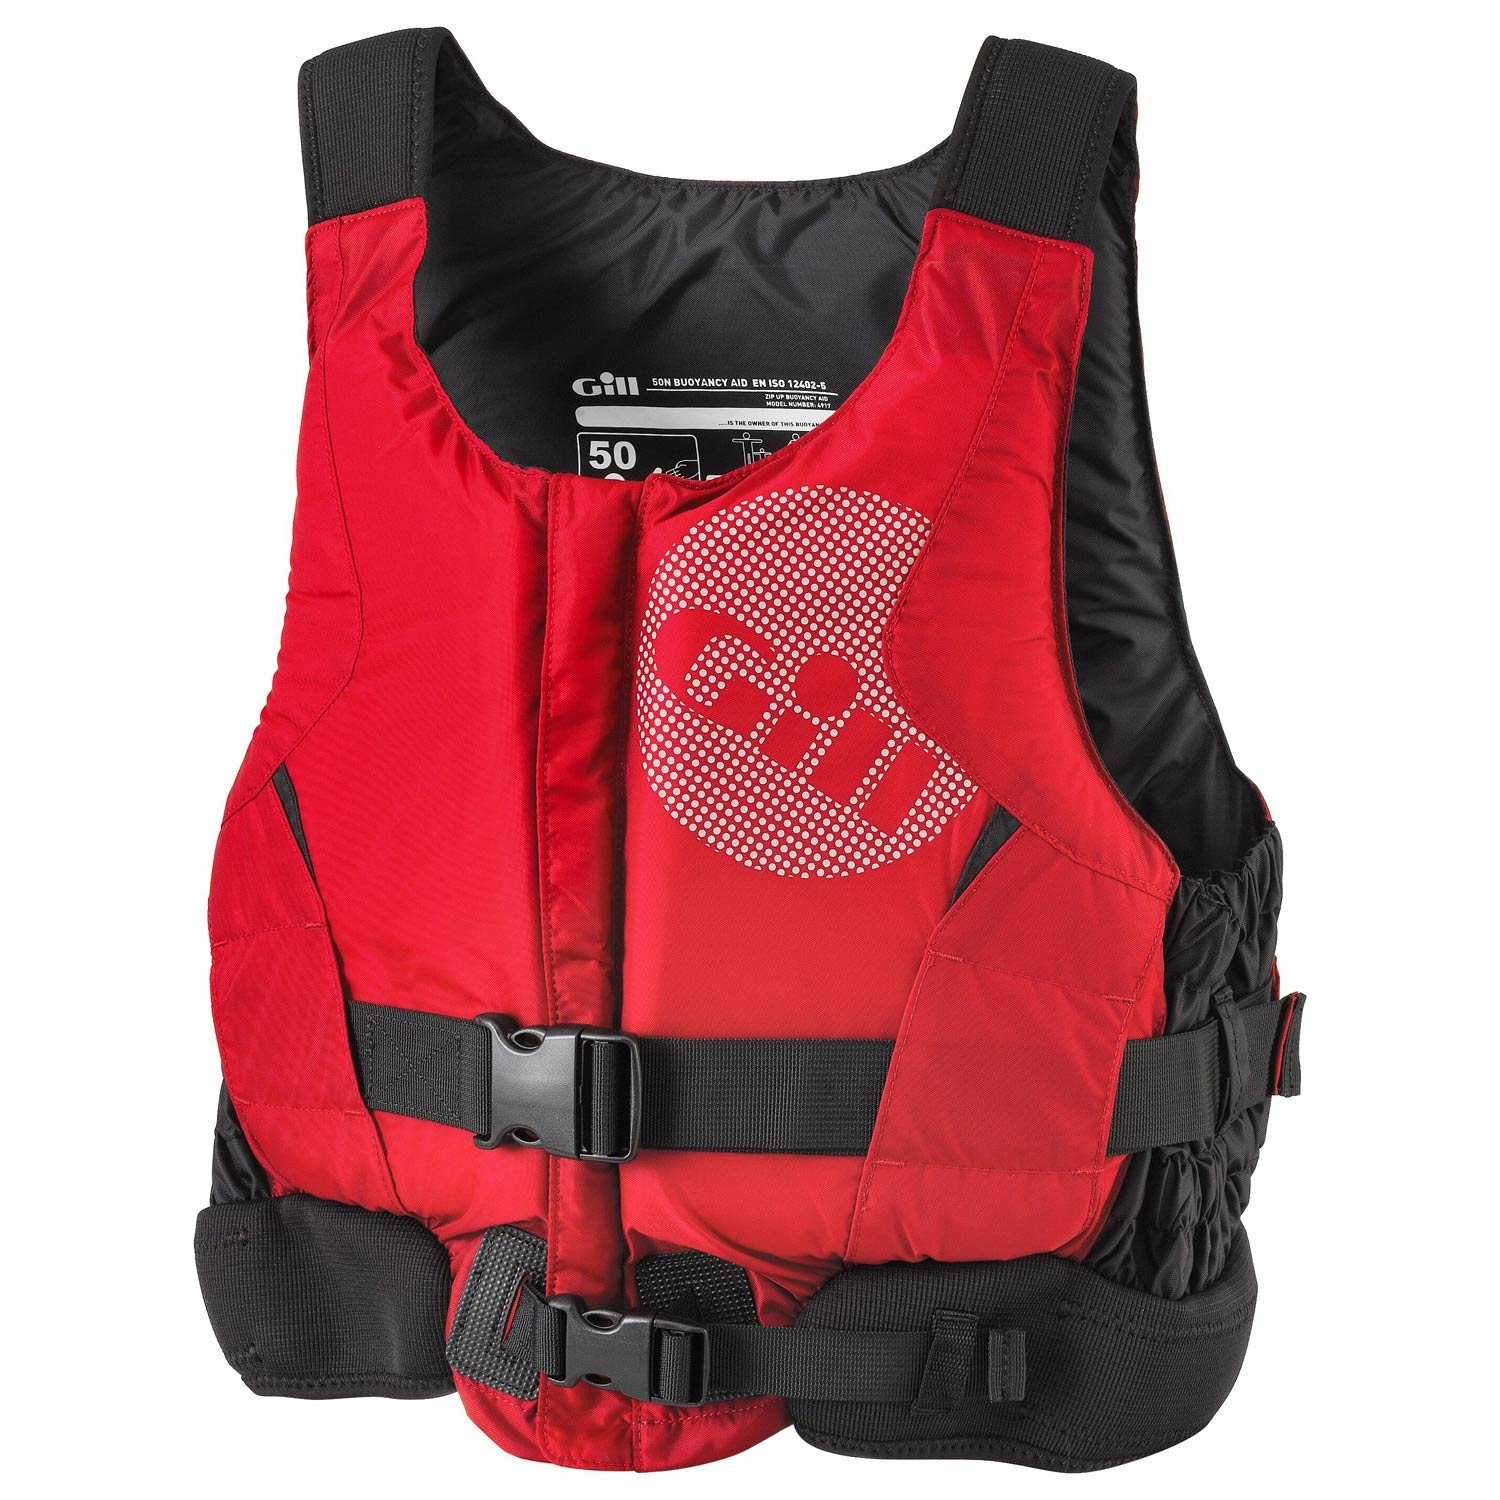 Unisex Gill Pro Racer Kids Youth Junior 50N Kayak Dinghy Sailing PFD Buoyancy Aid for Watersports Black